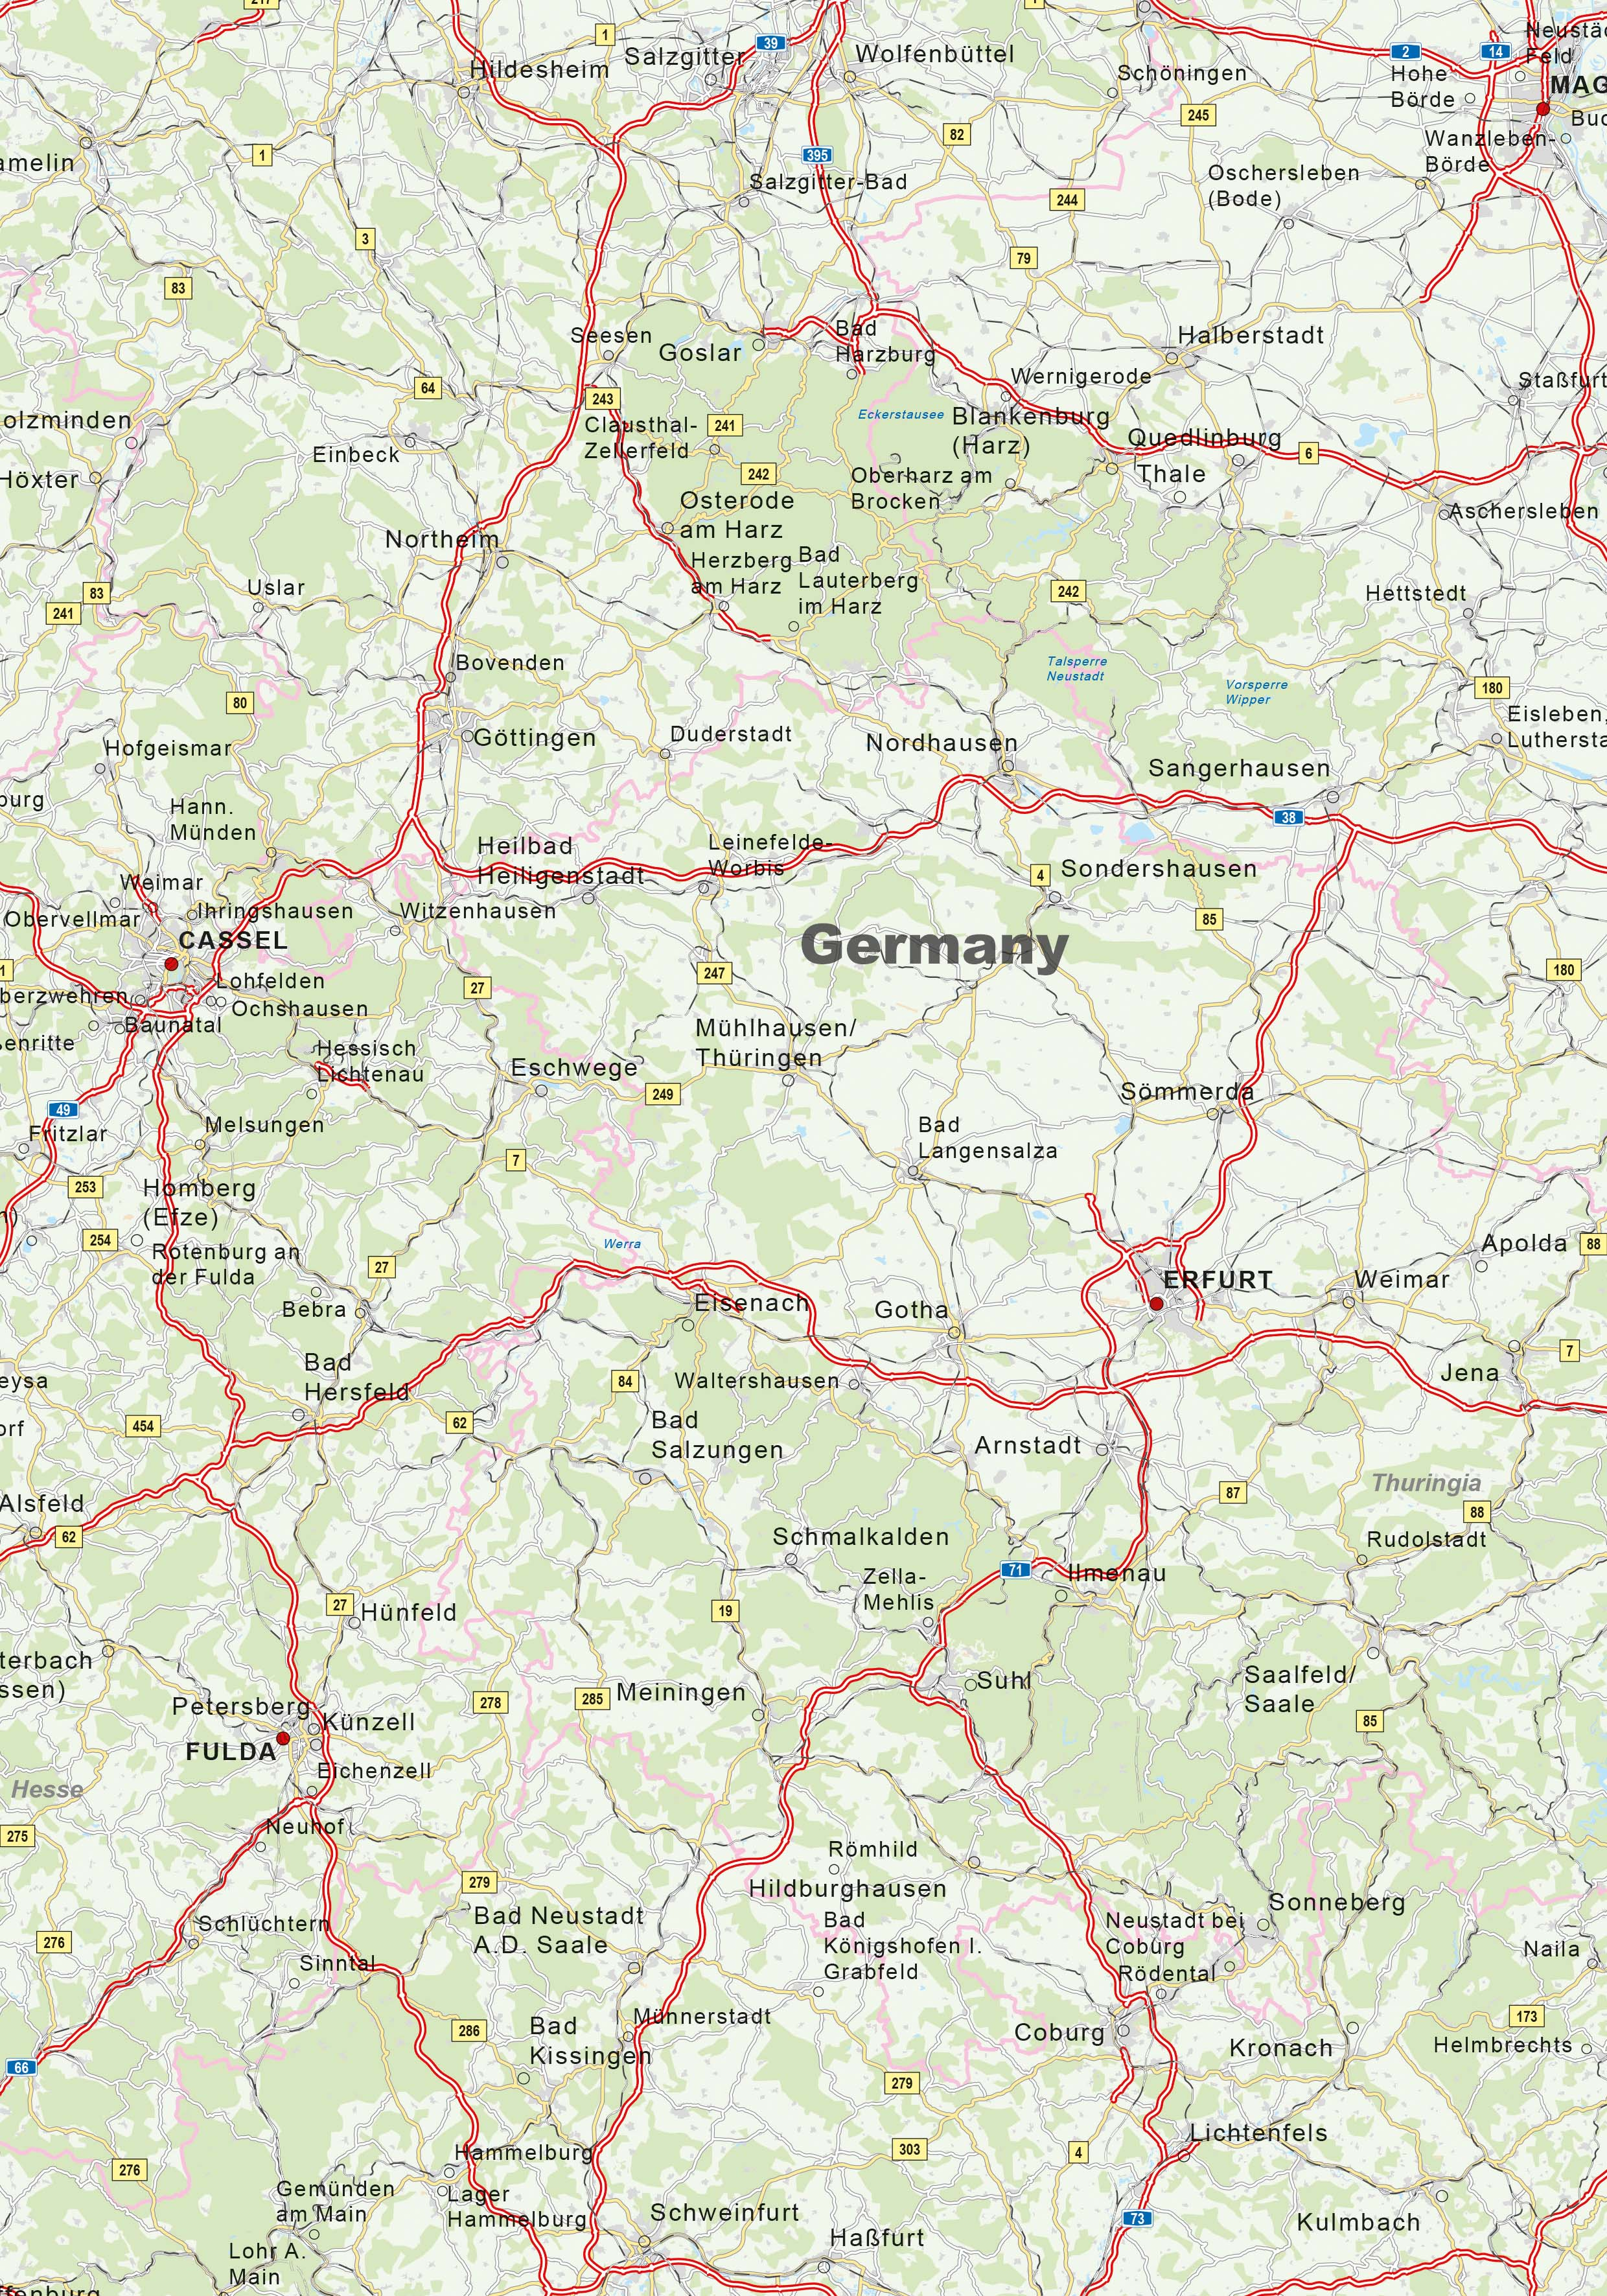 Digital Roadmap Germany 1416 | The World of Maps.com on environment of germany, products of germany, road map western germany, partners of germany, introduction of germany, blueprint of germany, map of germany, detailed map germany, online maps germany, architecture of germany, education of germany, culture of germany, mop of germany, resources of germany, overview of germany, team of germany, terrain of germany, features of germany,